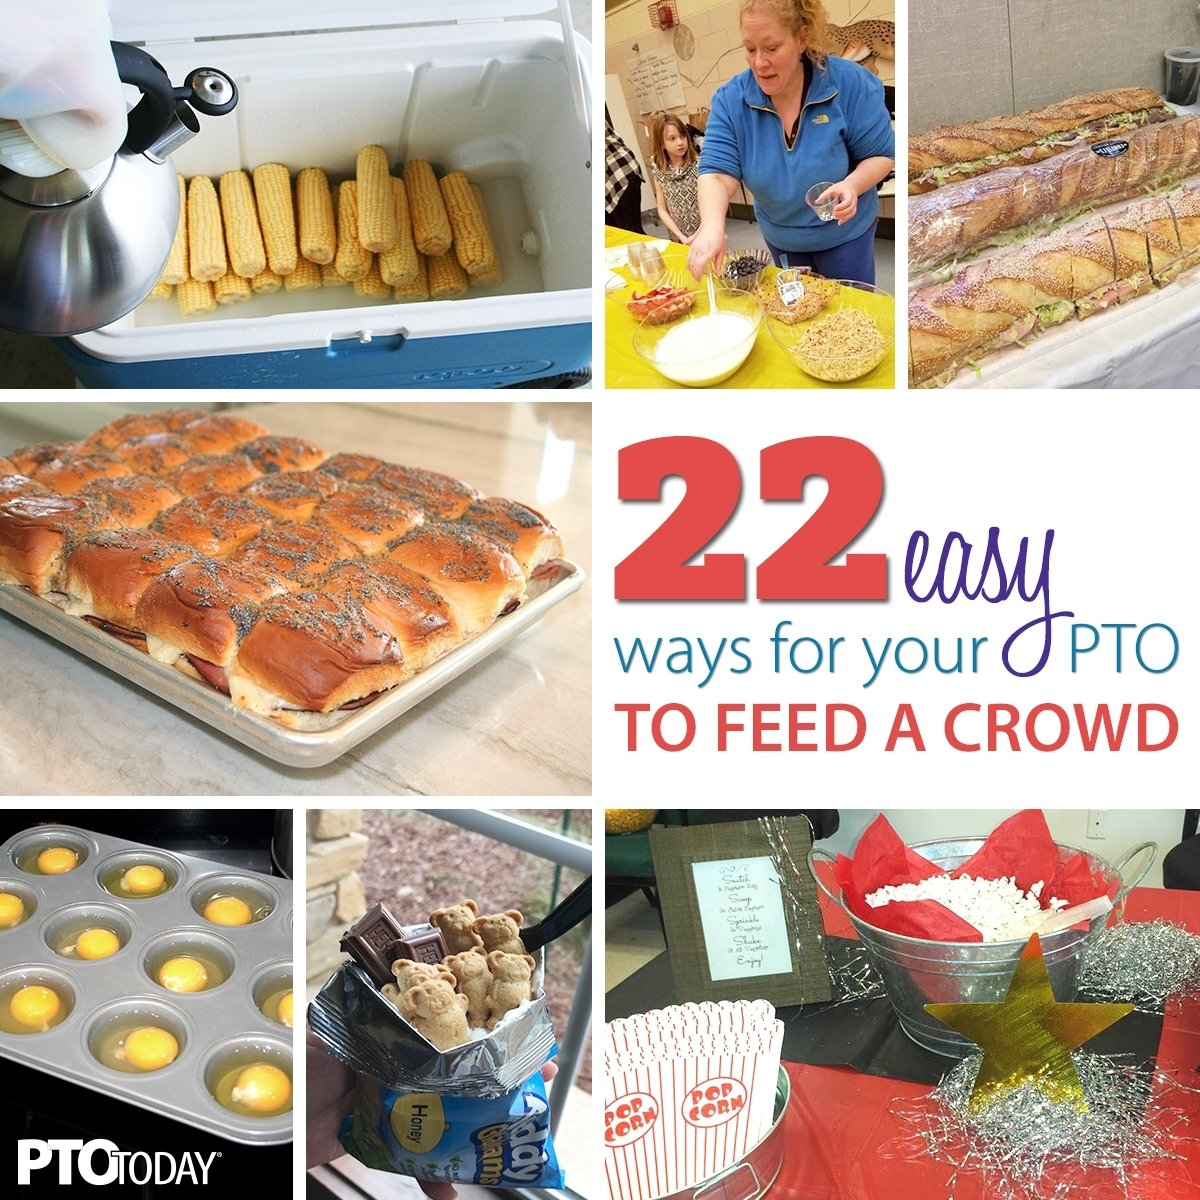 10 Great Easy Brunch Ideas For A Crowd 22 easy meal ideas for large groups pto today 2020